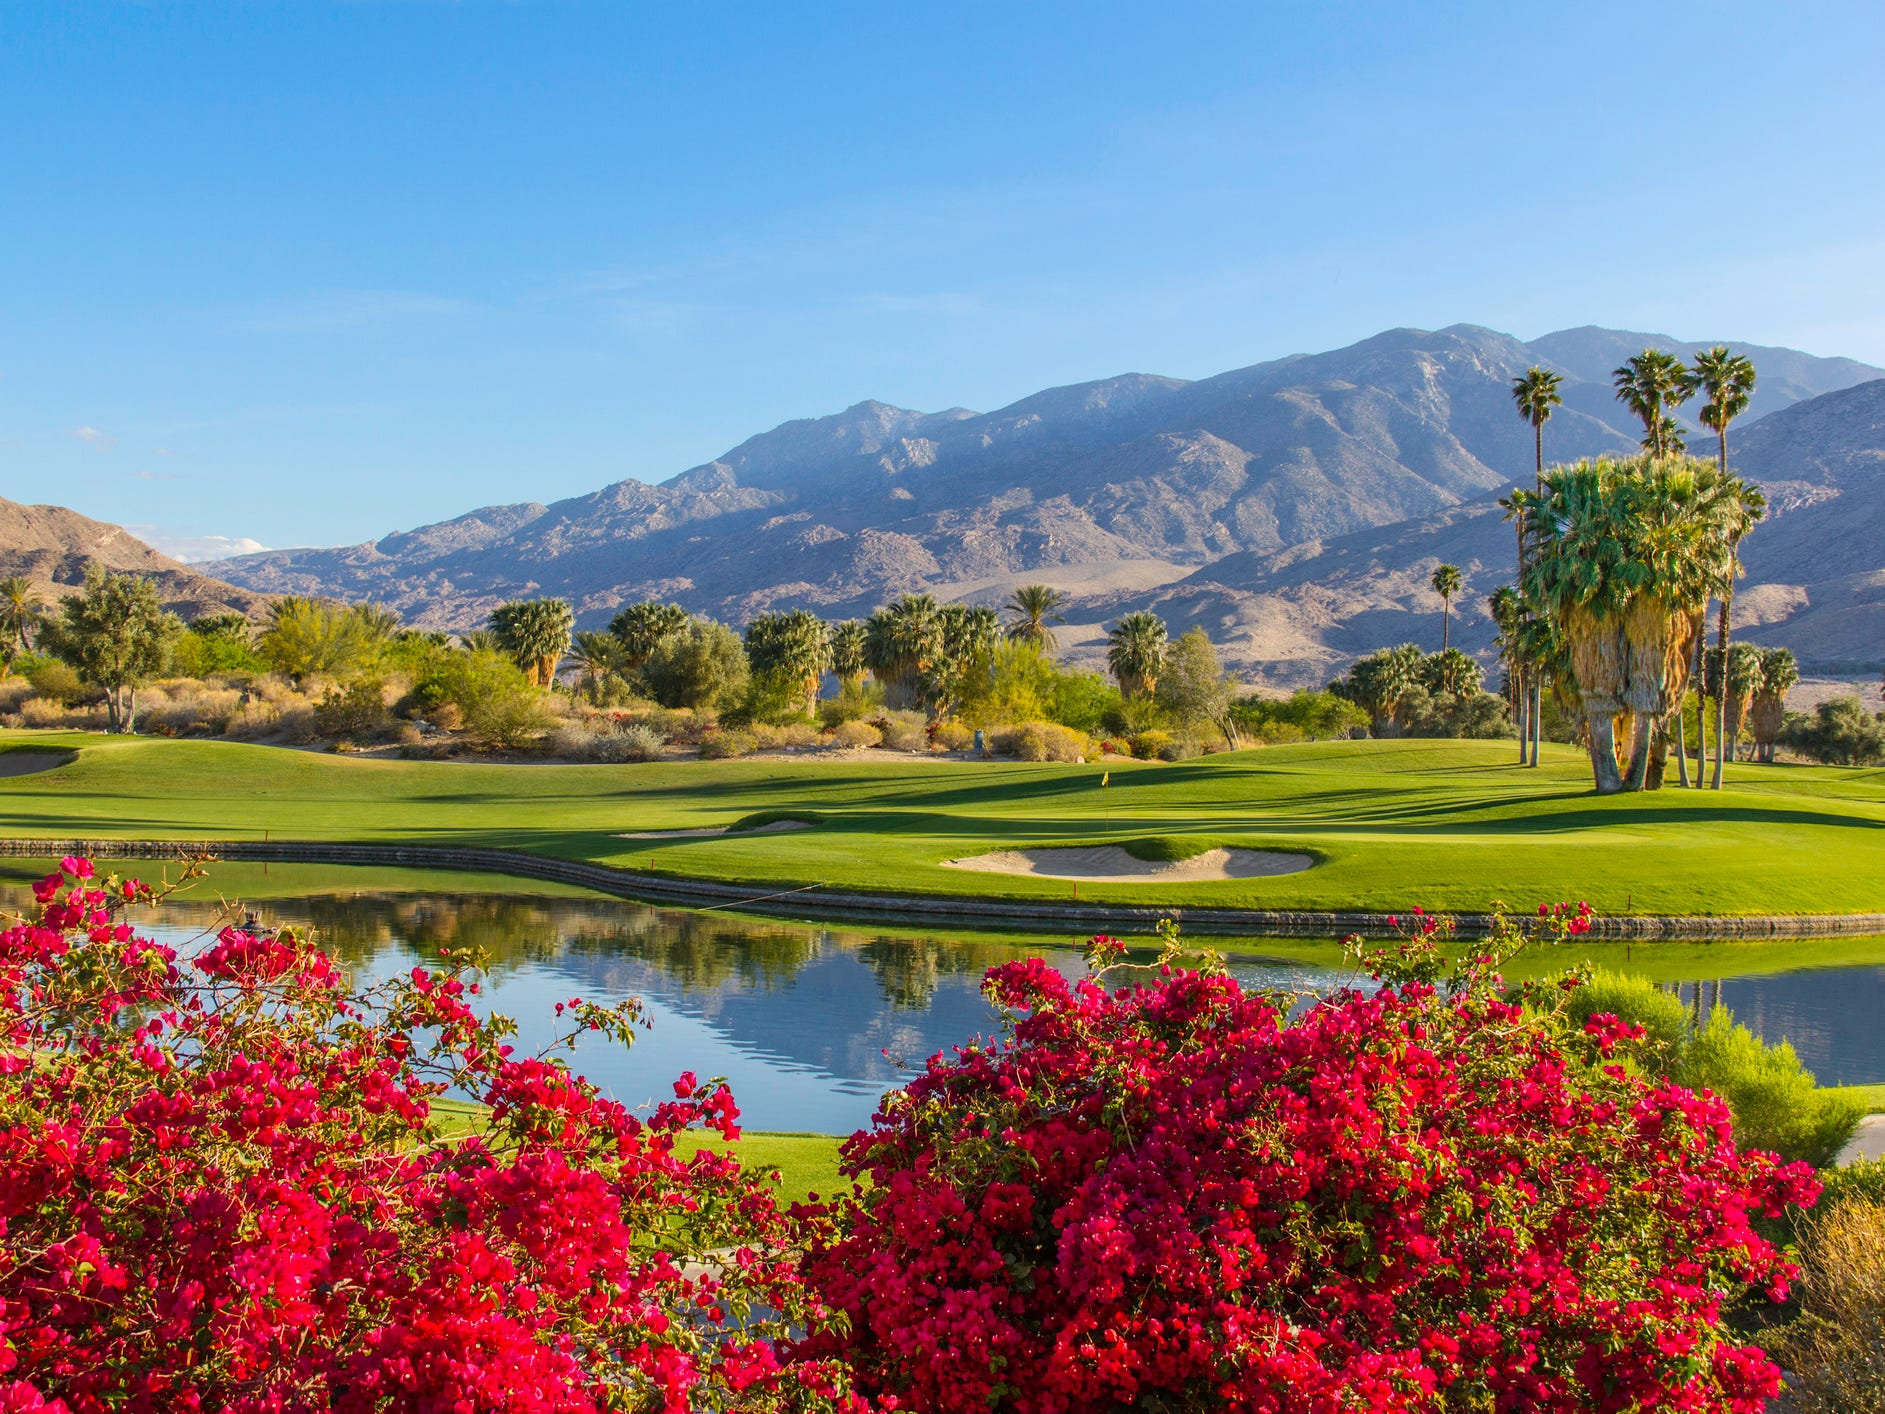 Greater Palm Springs, California: Thanks to new airfare routes and almost-always sunny weather, spring 2019 is the best time to travel to Palm Springs. Increased competition puts fares as low as $49 round trip from Chicago and $200 from New York, according to SmarterTravel. Just make sure to avoid peak travel dates in late April, when the Coachella and Stagecoach music festivals will increase prices due to popular demand.